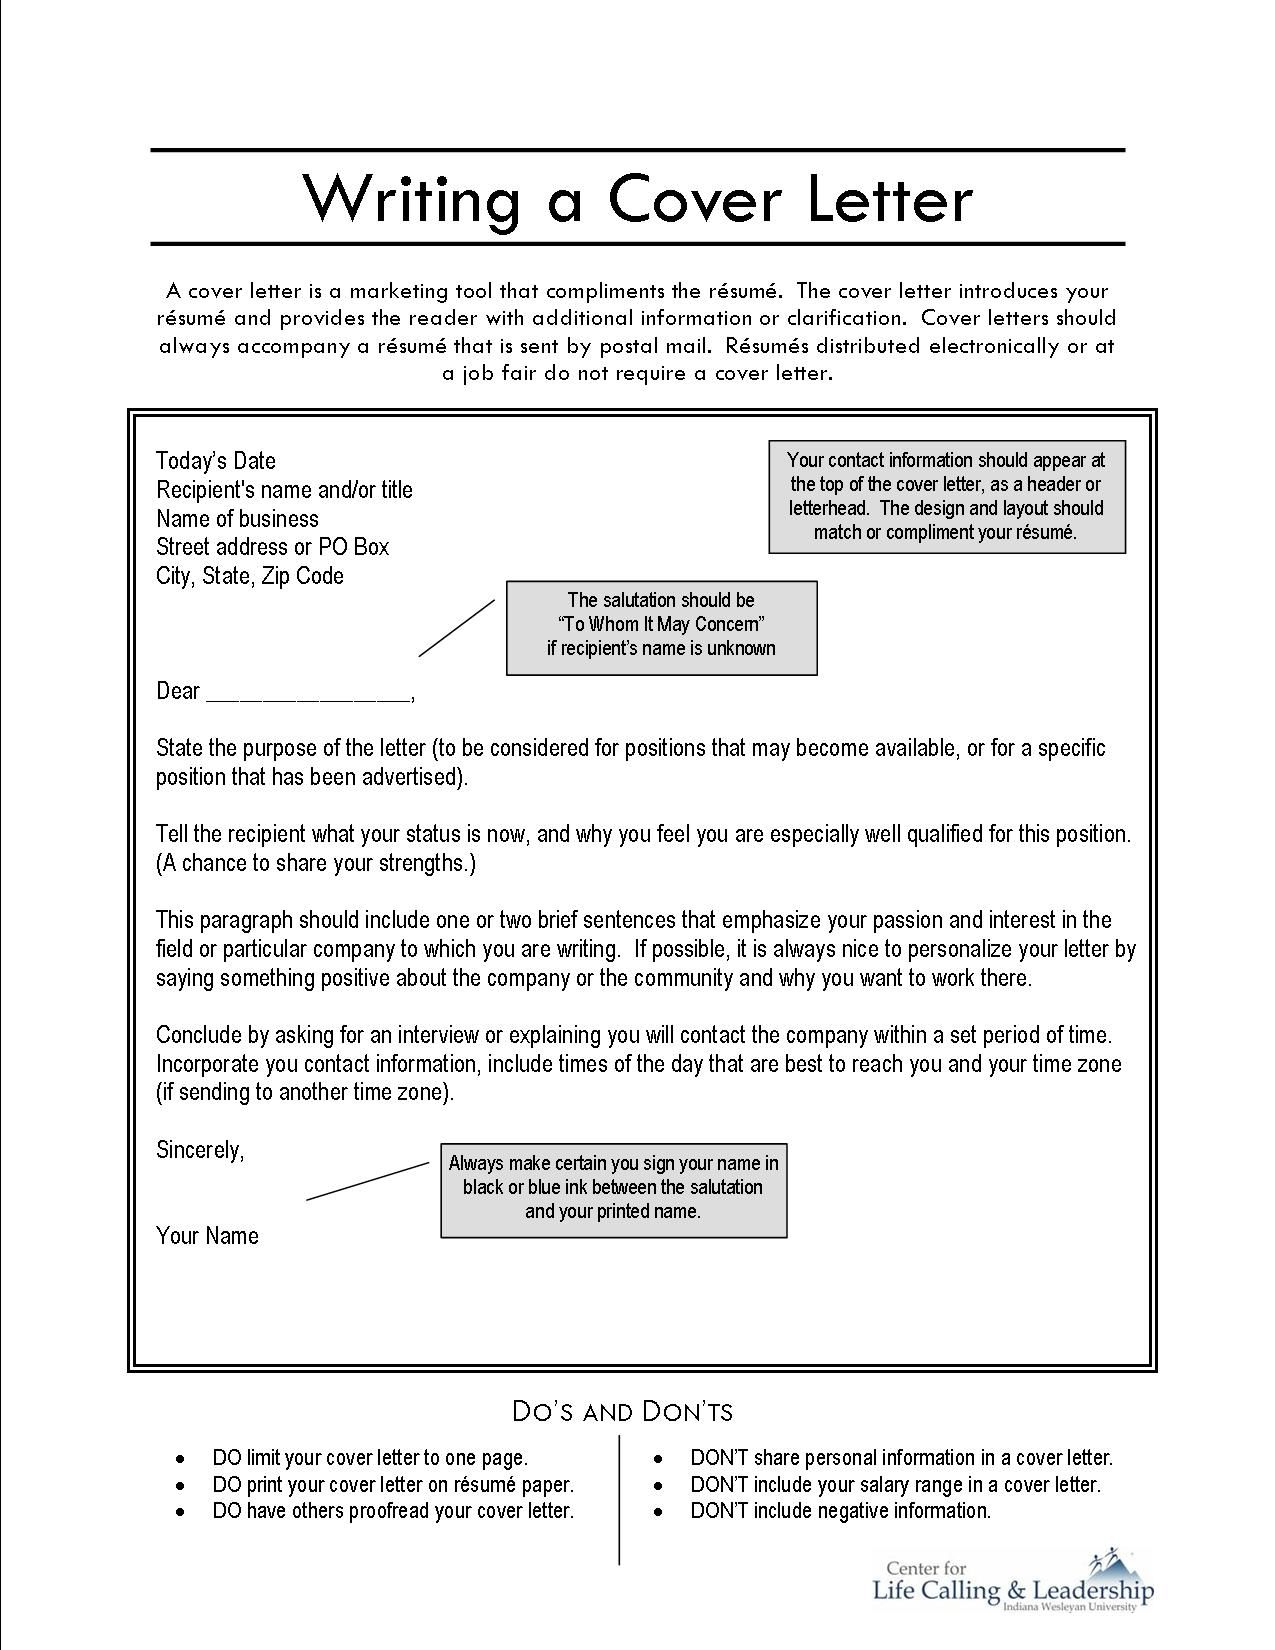 Writing a Cover Letter | Job Application Resources | Pinterest ...